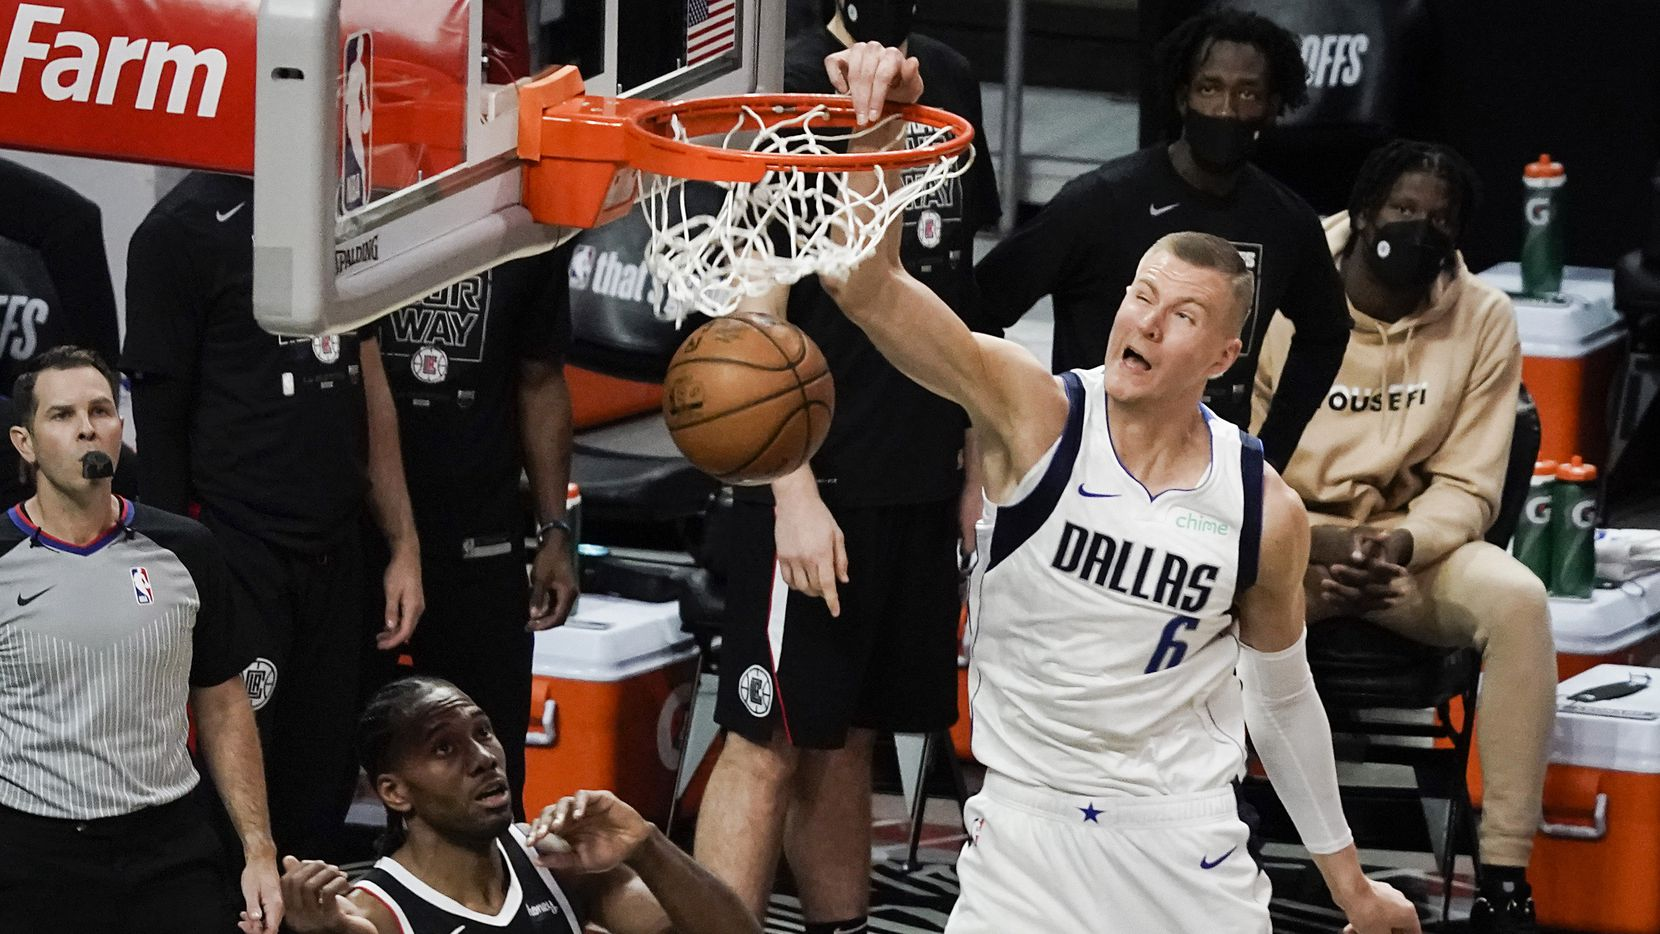 Dallas Mavericks center Kristaps Porzingis (6) dunks the ball past LA Clippers forward Kawhi Leonard (2) during the final minute of second half of an NBA playoff basketball game at Staples Center on Saturday, May 22, 2021, in Los Angeles. The Mavericks won the game 113-103.